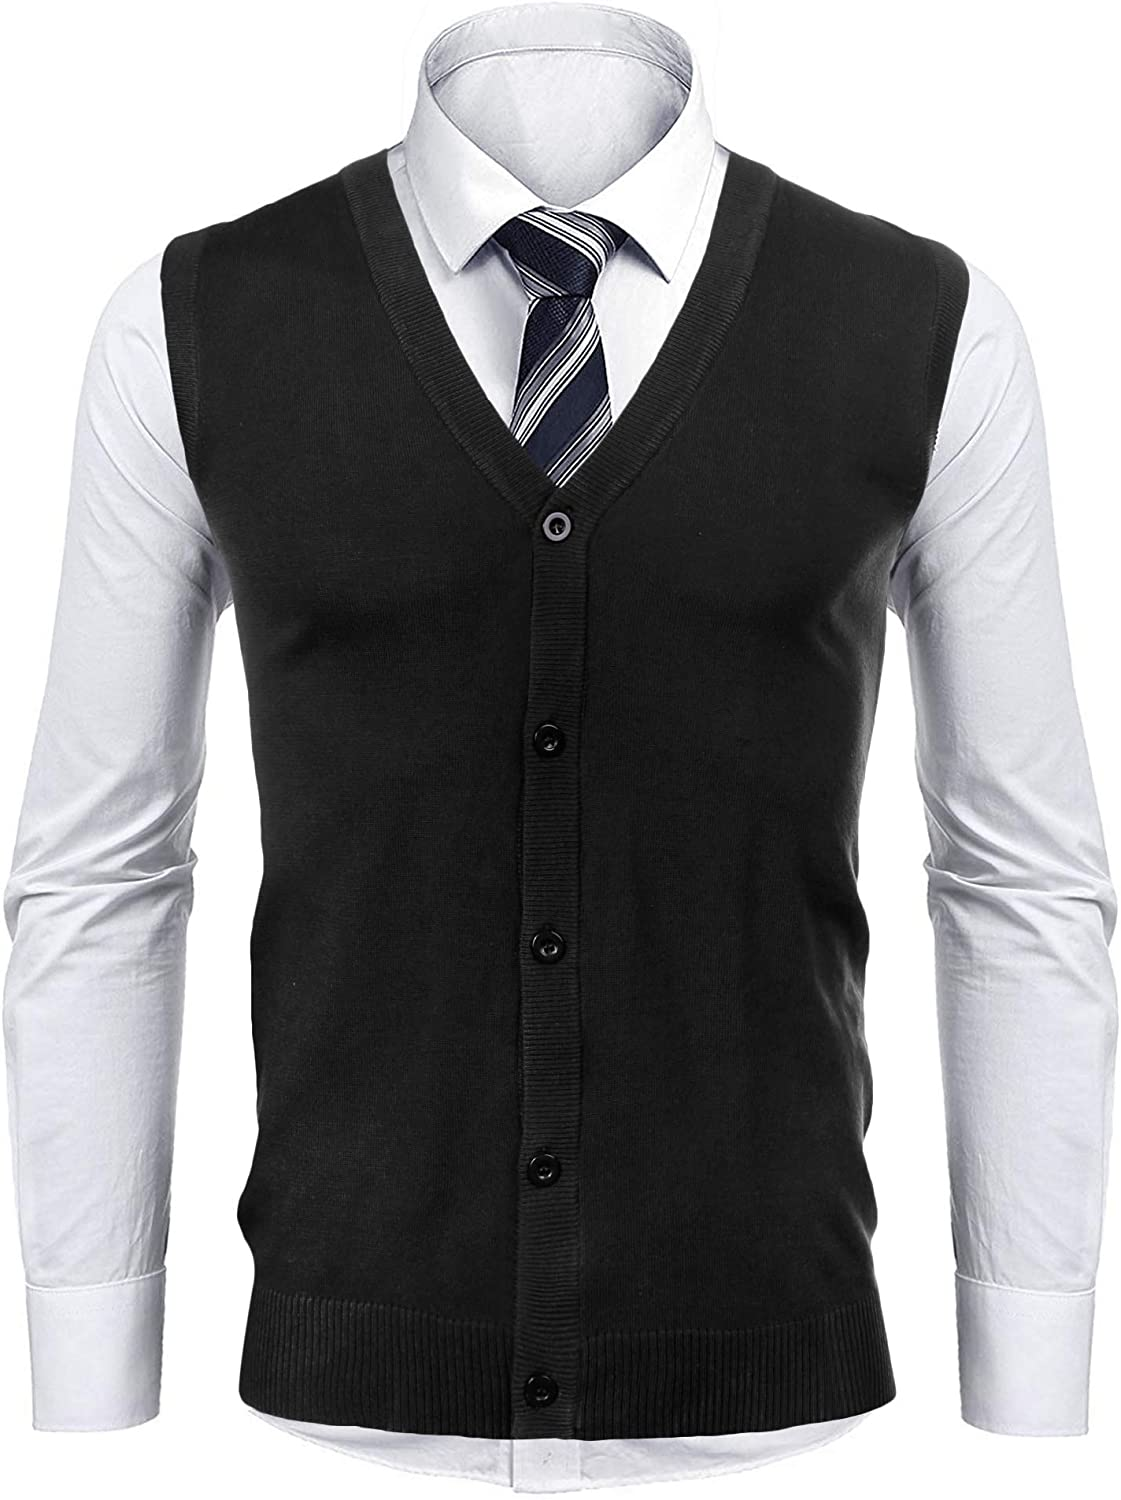 iClosam Mens Casual V-Neck Slim Knitted Vest Max 74% OFF Lightwe Fit Sweater Spasm price